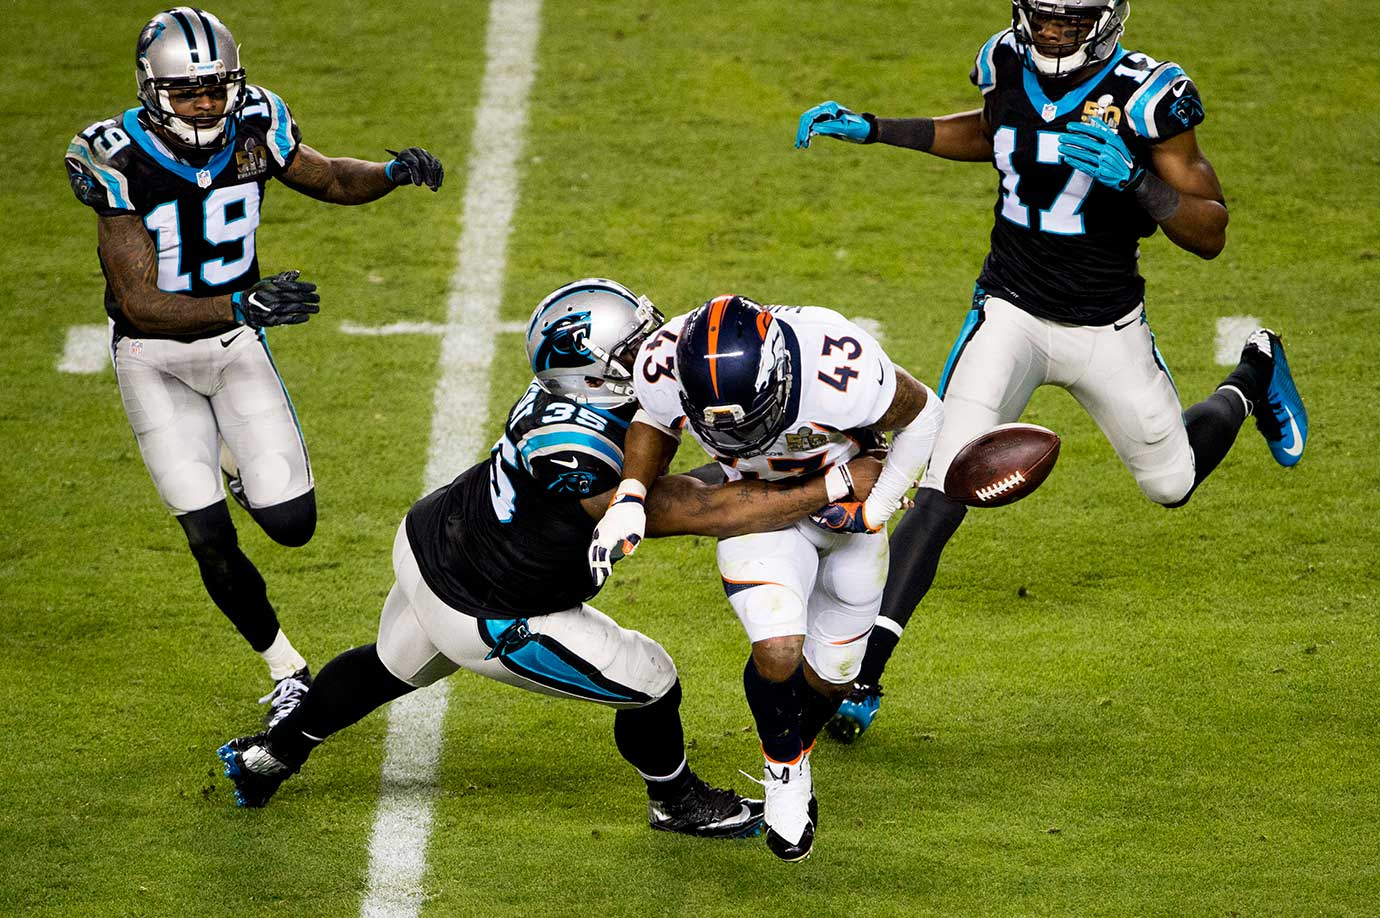 T.J. Ward fumbles the ball while returning an interception.